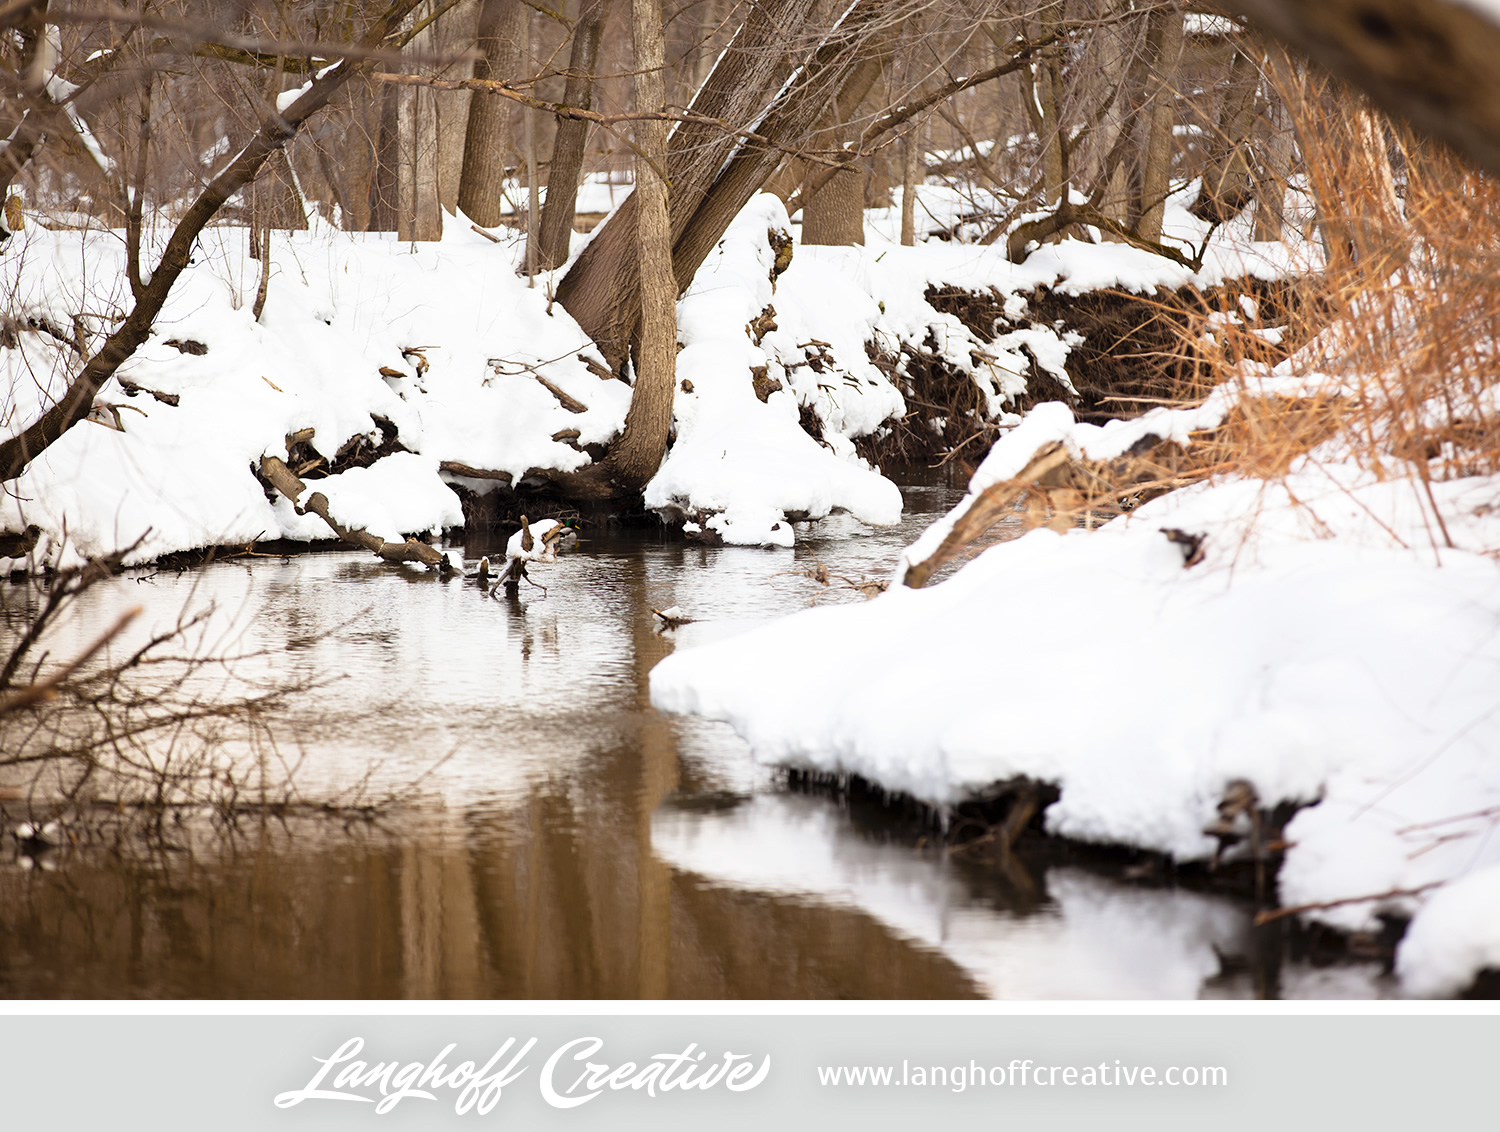 LanghoffCreative-20130308-winter14-image.jpg